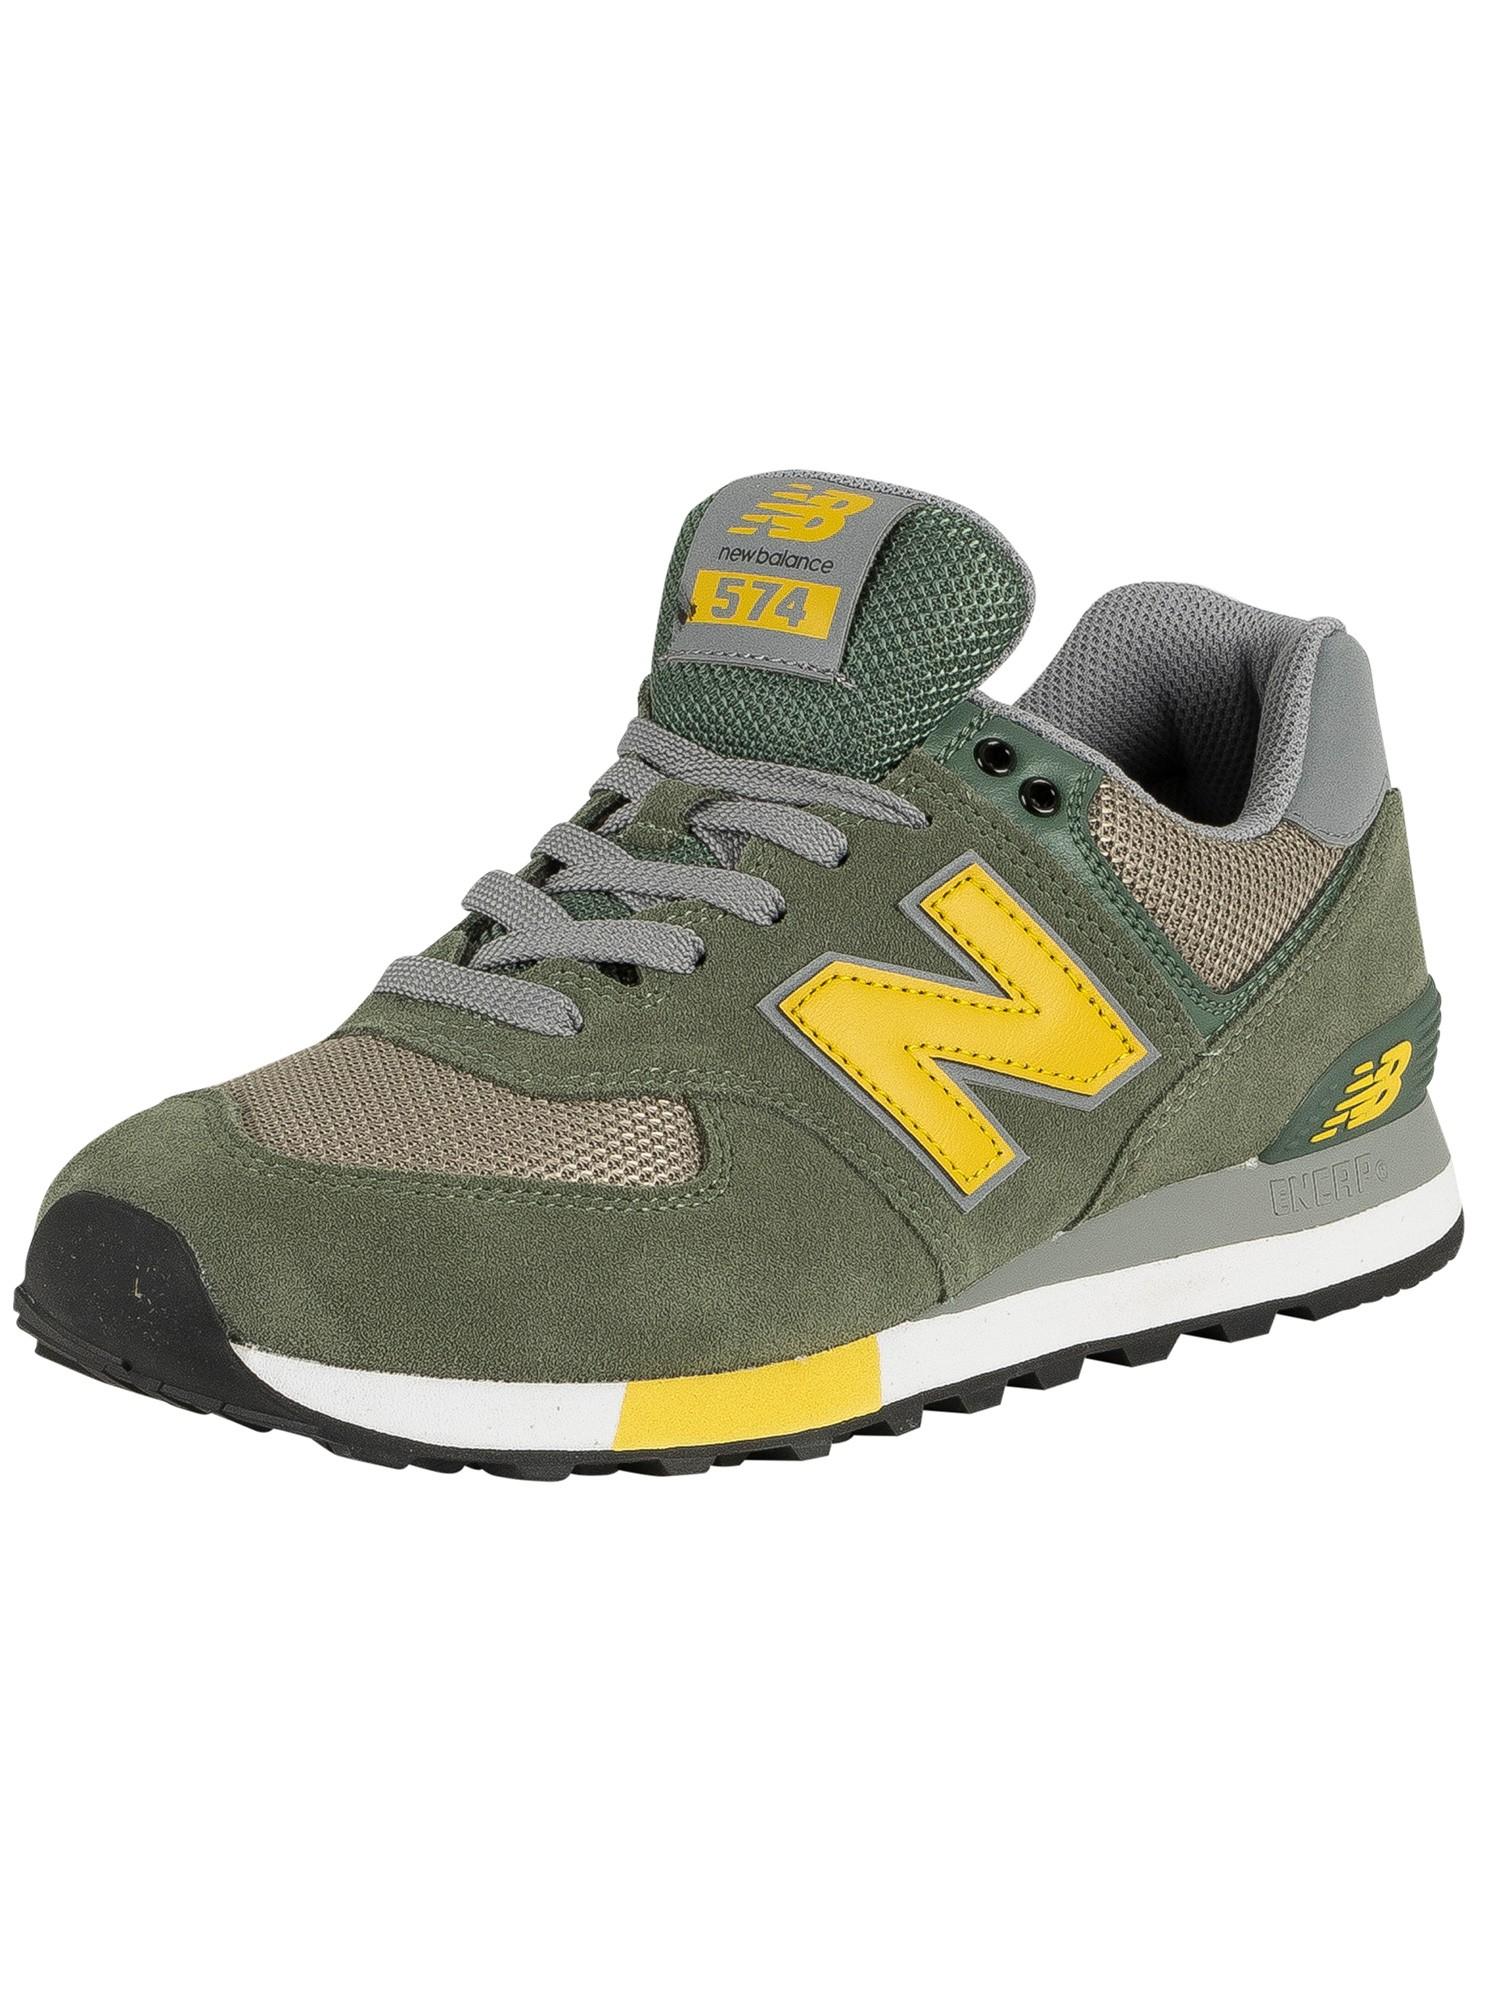 buy online 35634 8aaf3 New Balance 574 Suede Trainers - Slate Green/Earth